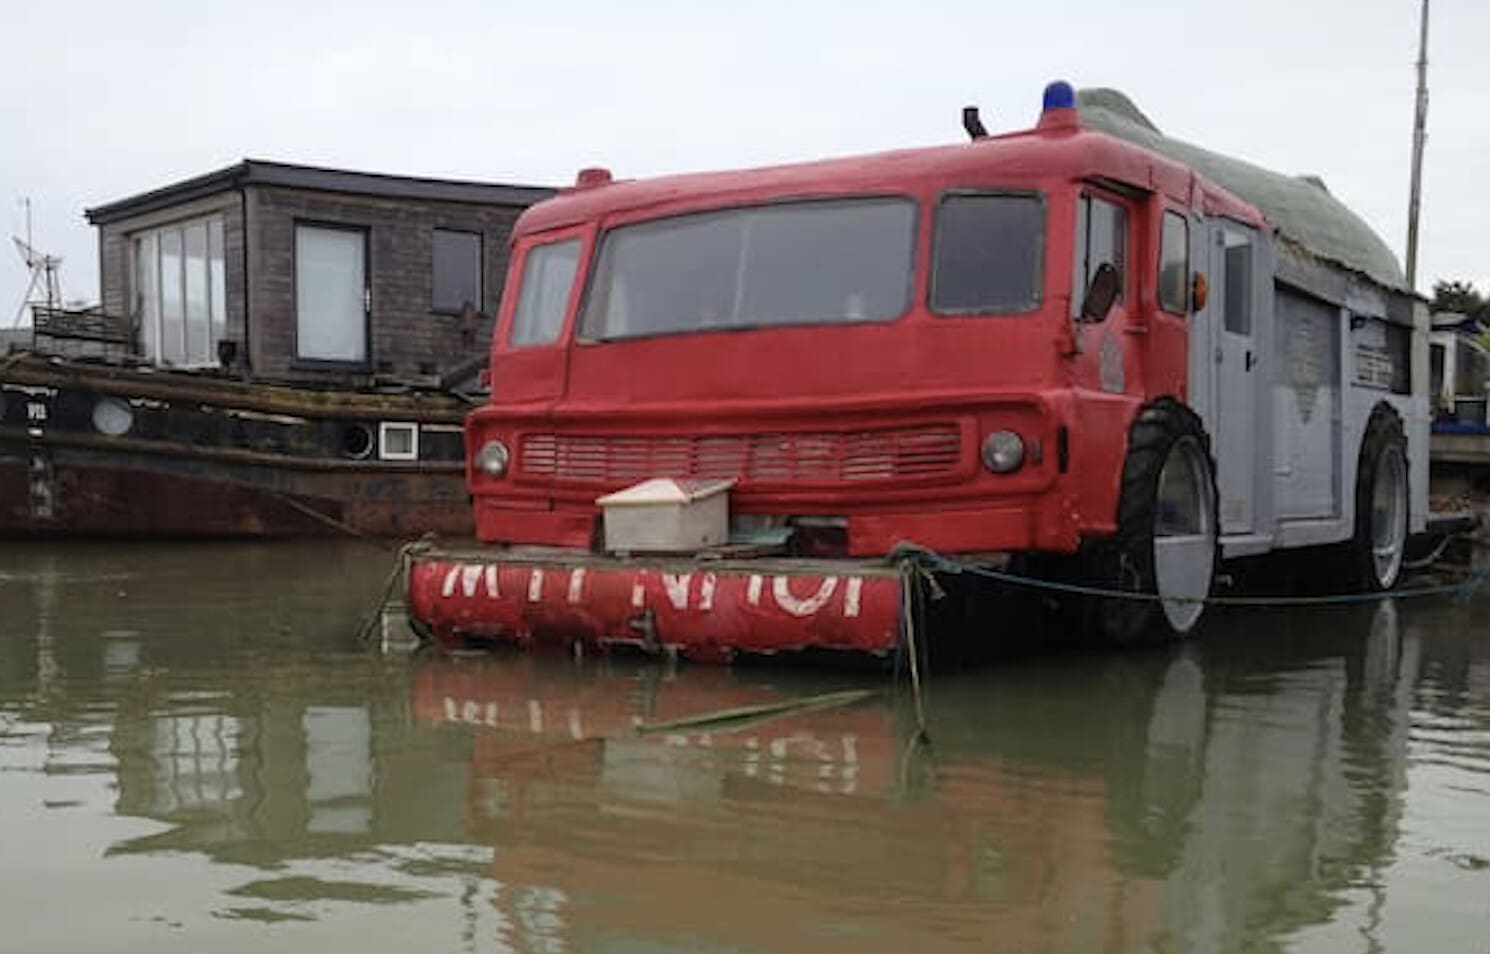 Quirky fire engine and upside-down boat at The Dodge Fire Engine Boat.